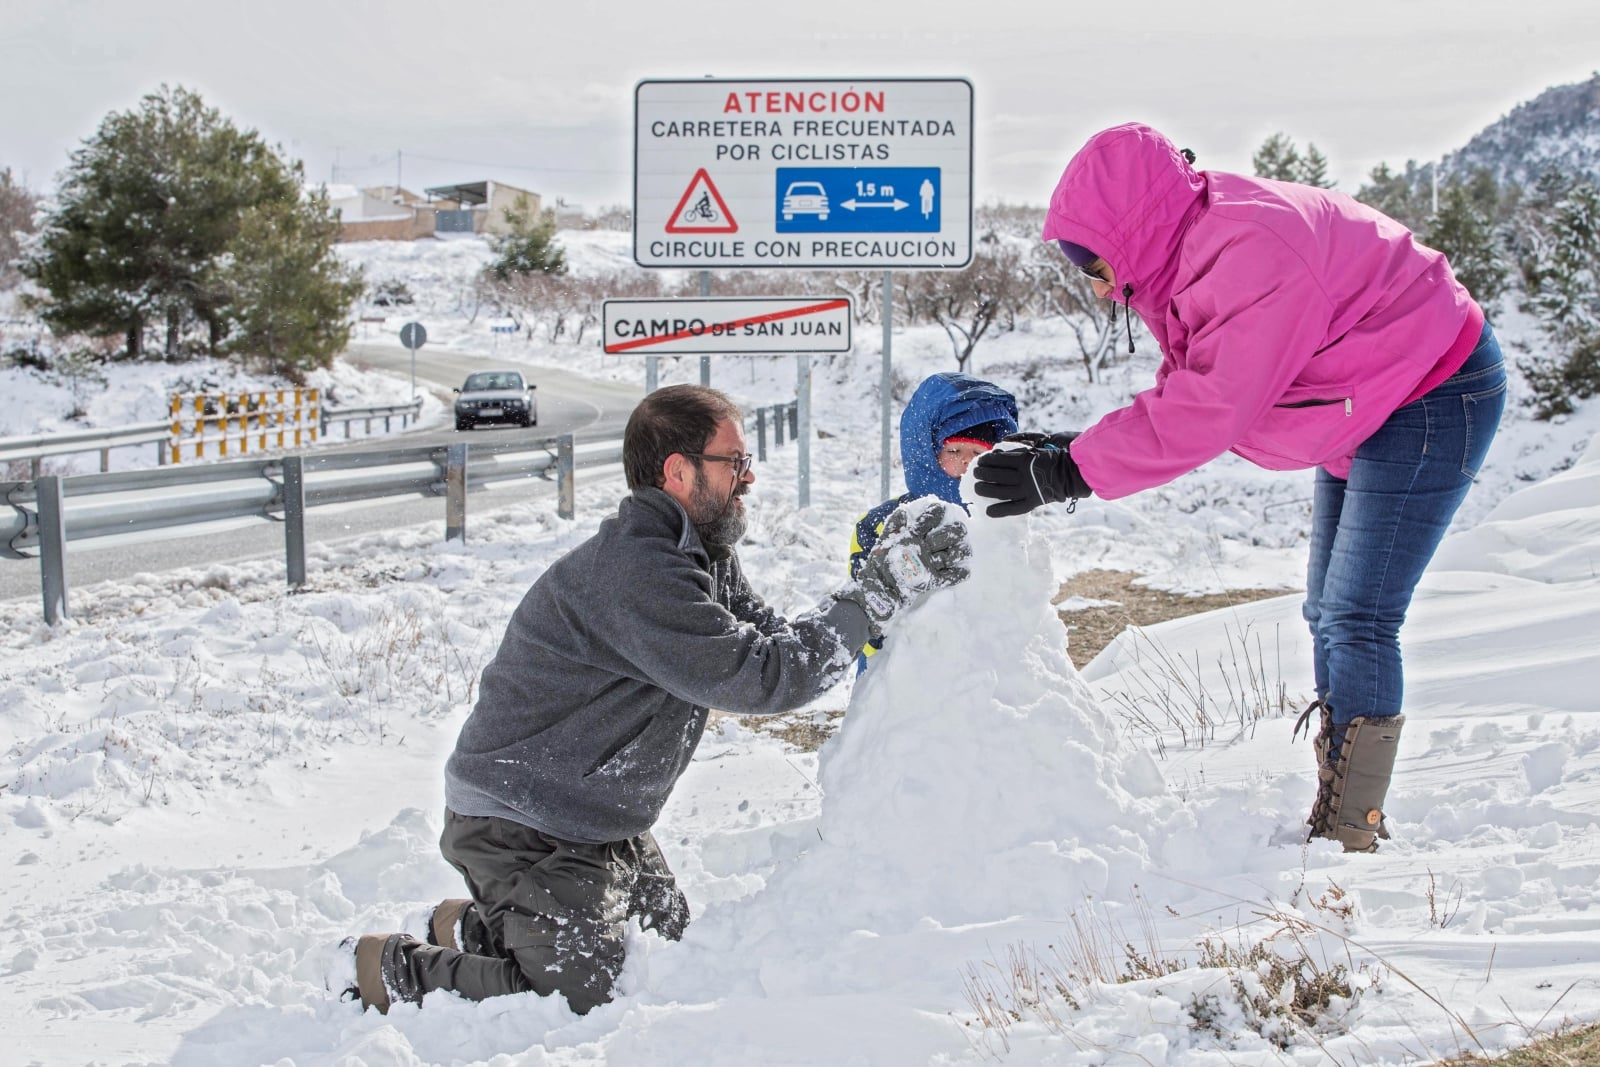 epa06492460 A child builds a snowman with his parents in Moratalla, Murcia, south eastern Spain, 02 February 2018. The cold wave that started a week ago resulted in snowfall in Murcia, for the first time since 1983.  EPA/MARCIAL GUILLEN Dostawca: PAP/EPA.